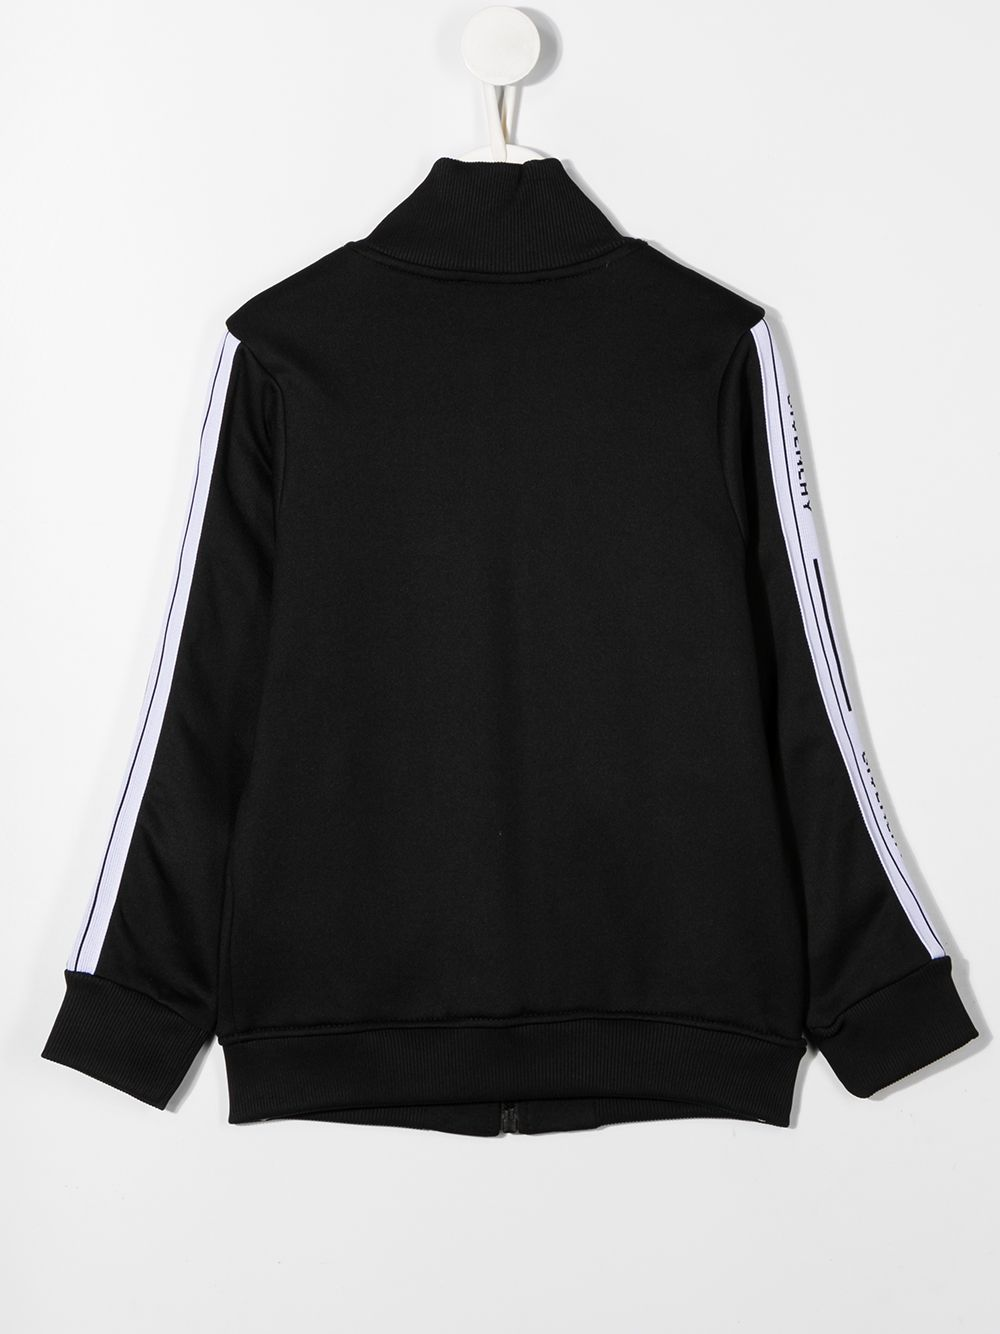 GIVENCHY KIDS Logo Cardigan Black